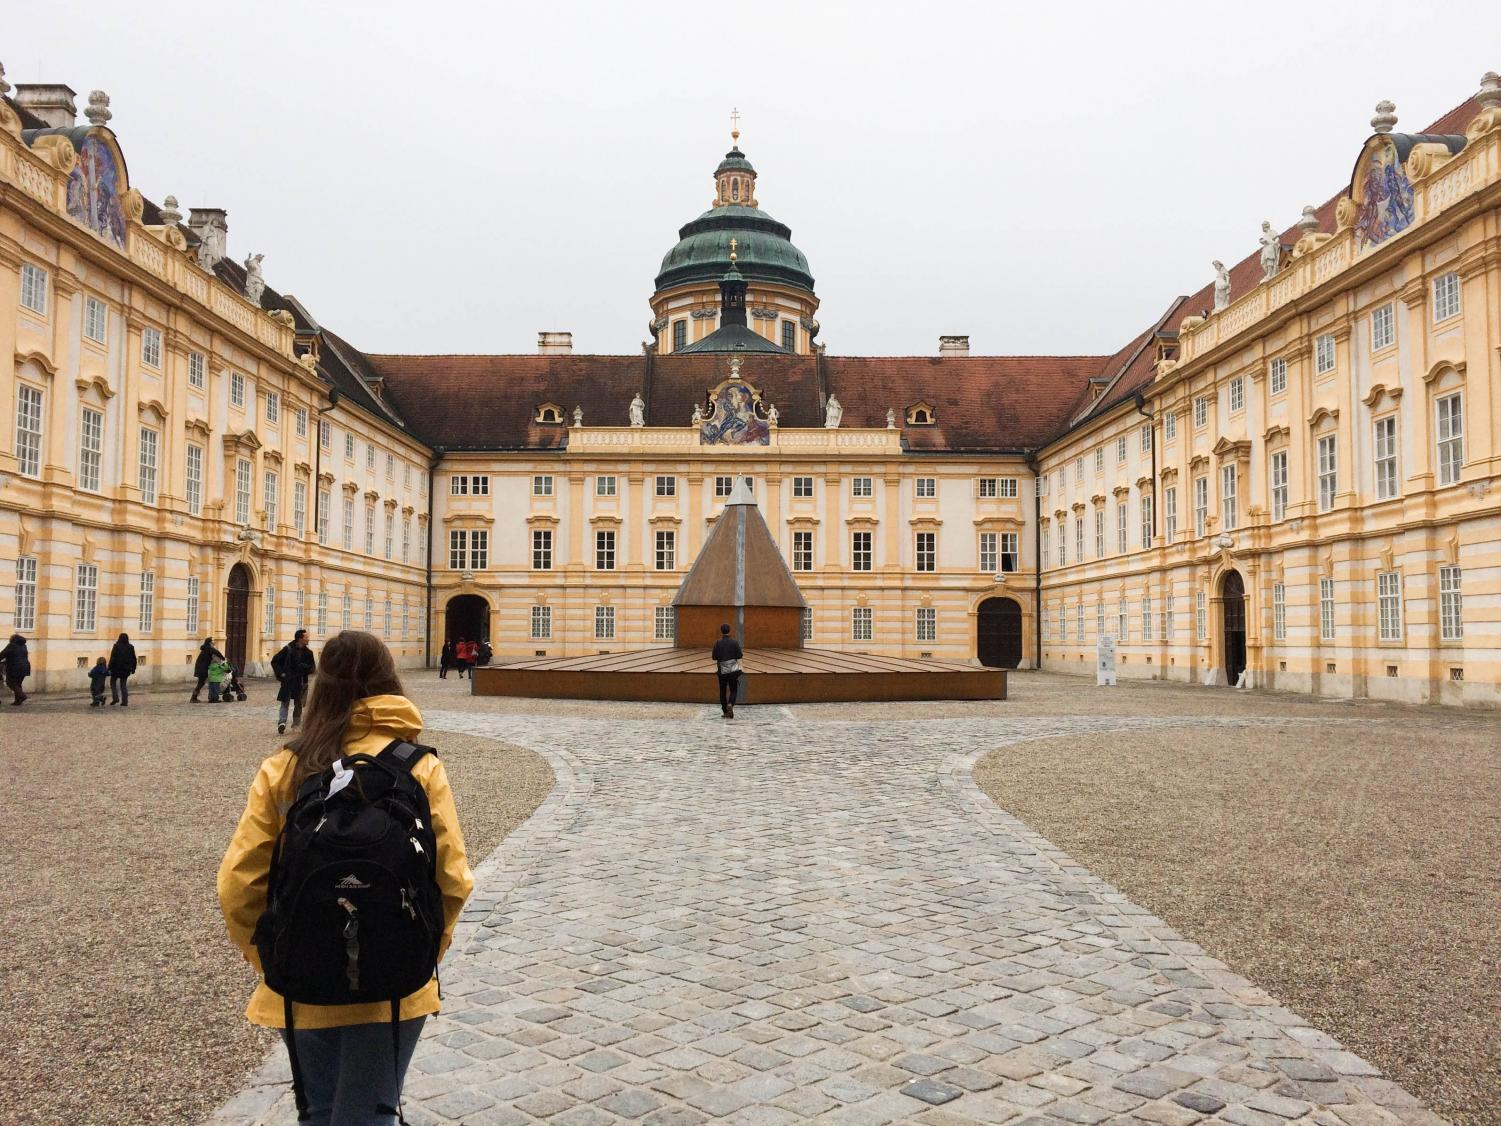 Anna and Josie's choir spent multiple days in Austria before they arrived, which included a visit to the Melk Abbey in Melk, Austria.